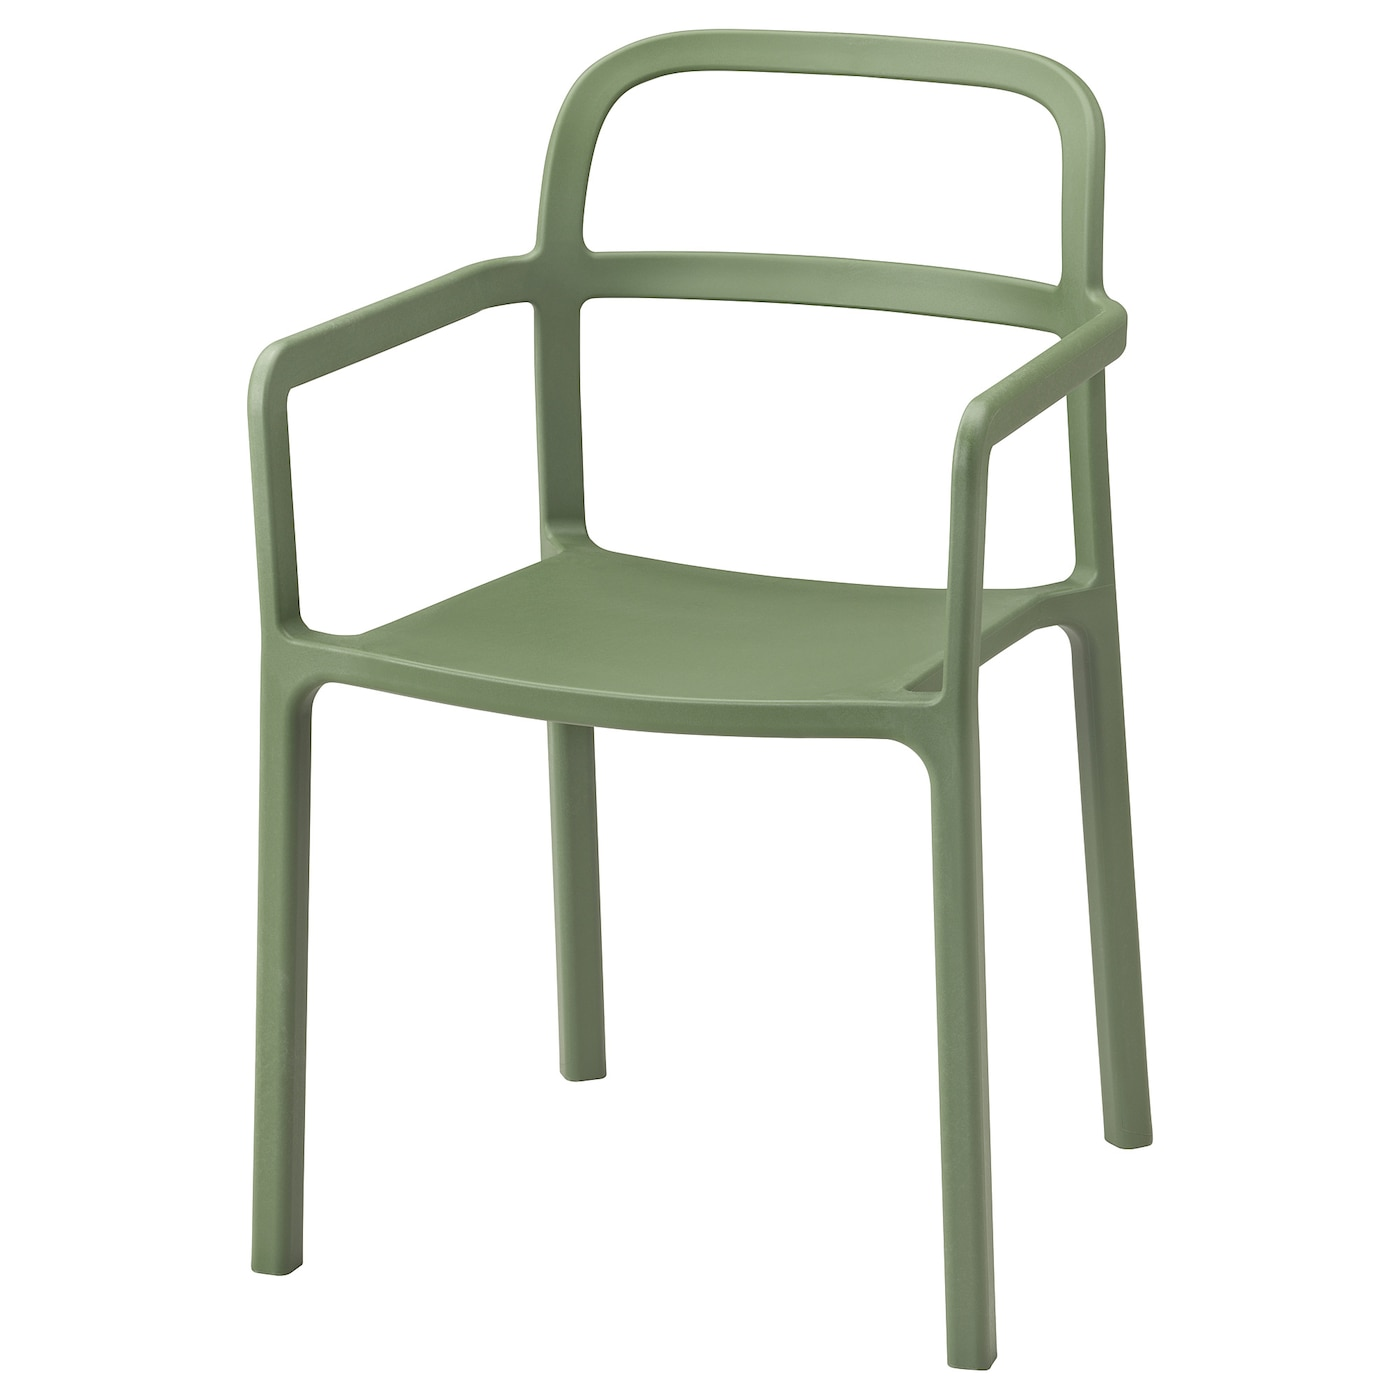 ypperlig chair with armrests in outdoor green ikea. Black Bedroom Furniture Sets. Home Design Ideas